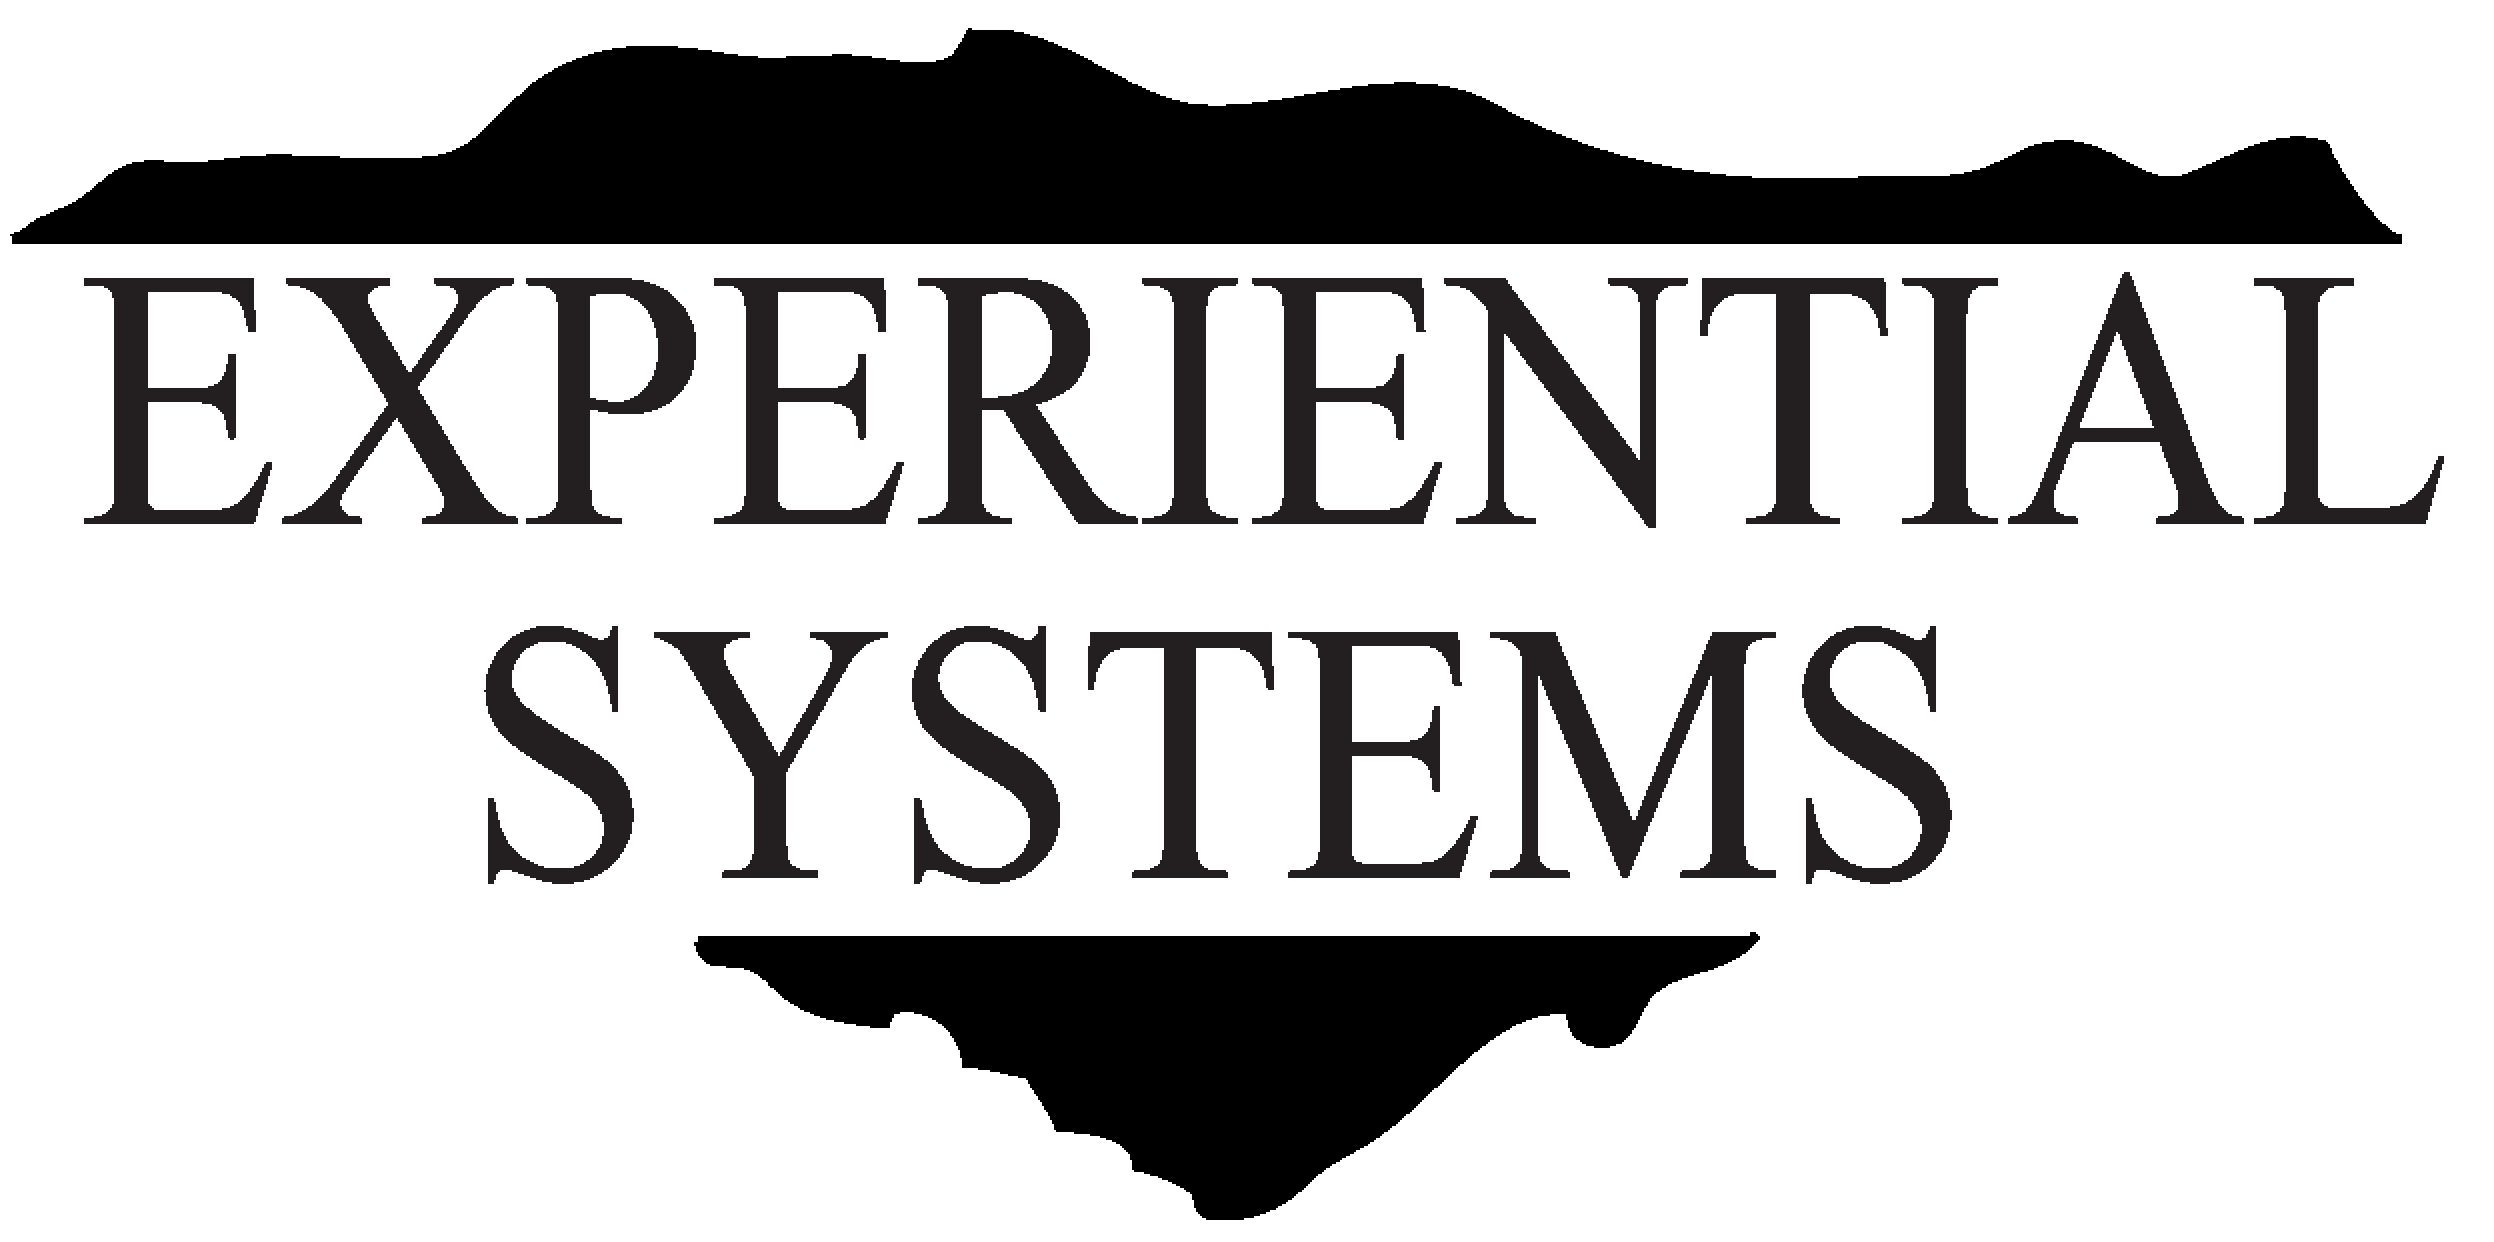 Experiential Systems